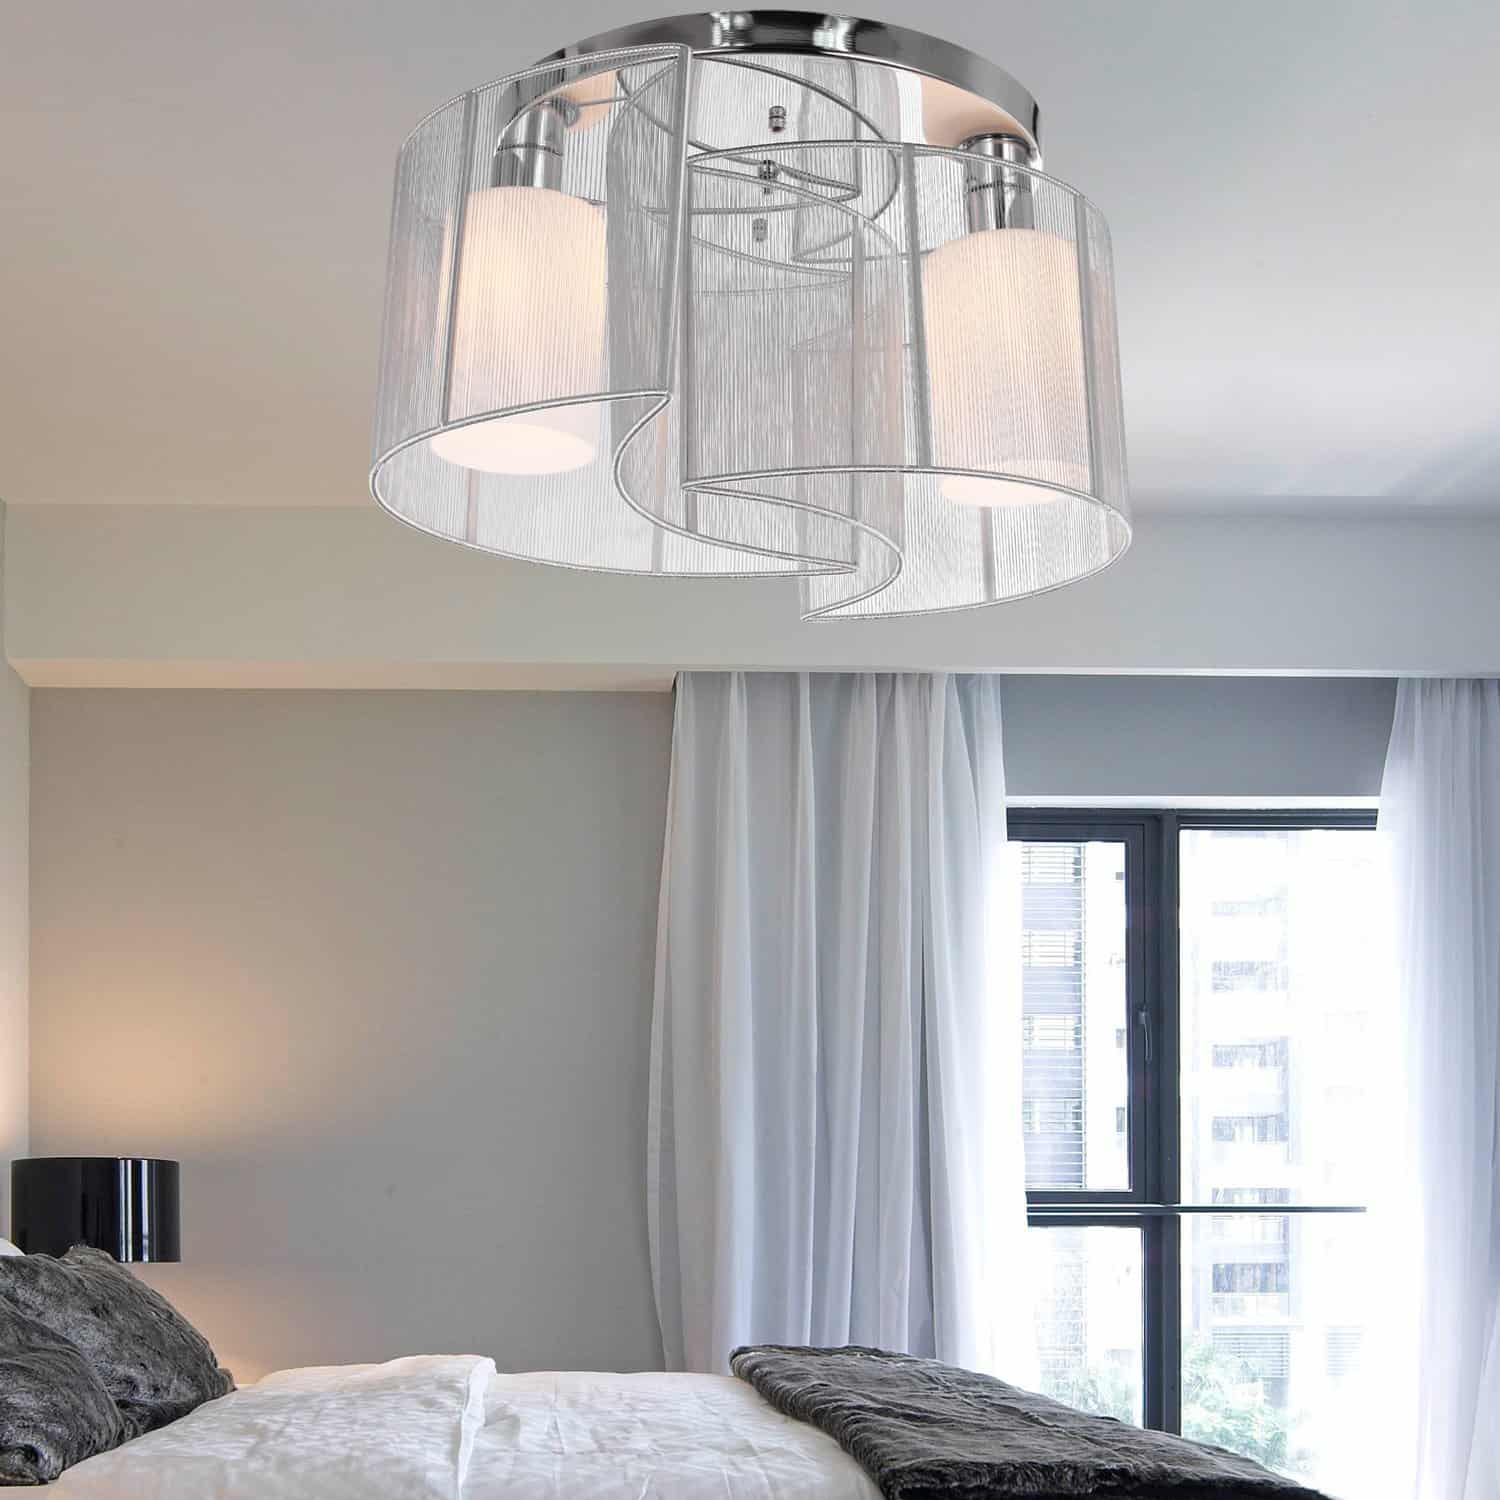 Just by having a metallic light fixture in the room you can help expand the space of the room visually